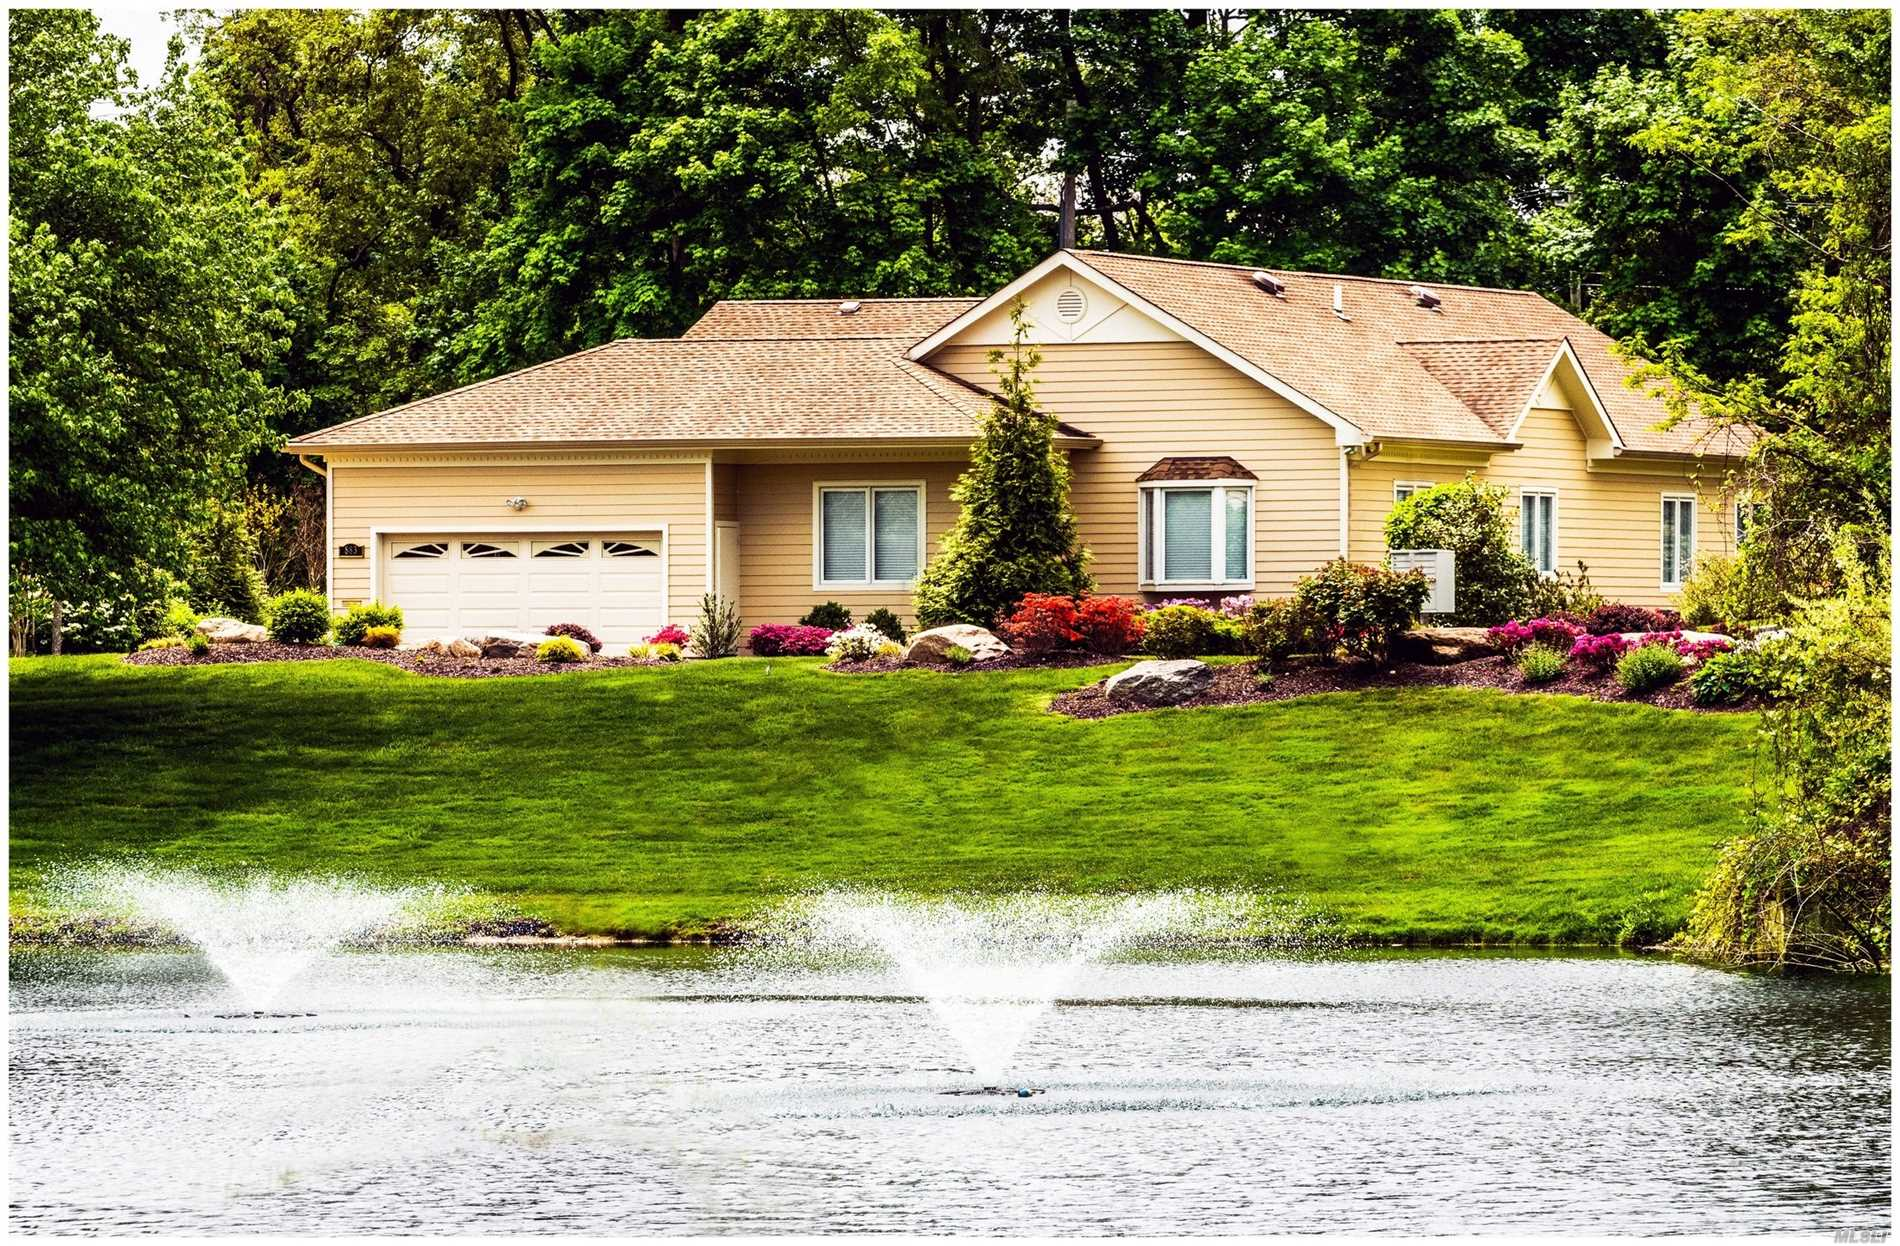 Set beside a pond in the prestigious gated community of The Links, this newly constructed Kensington Ranch is the picture of contemporary modern minimalism. With an open plan living-dining area & family room. French doors open to a private backyard patio w/beautiful garden view. Custom-designed chef's kitchen, Master on main w/two additional bedrooms, full & half baths. Radiant heat. Elevator to walk-out basement, that includes two bedrooms, full bath, fitness center and cedar closet.